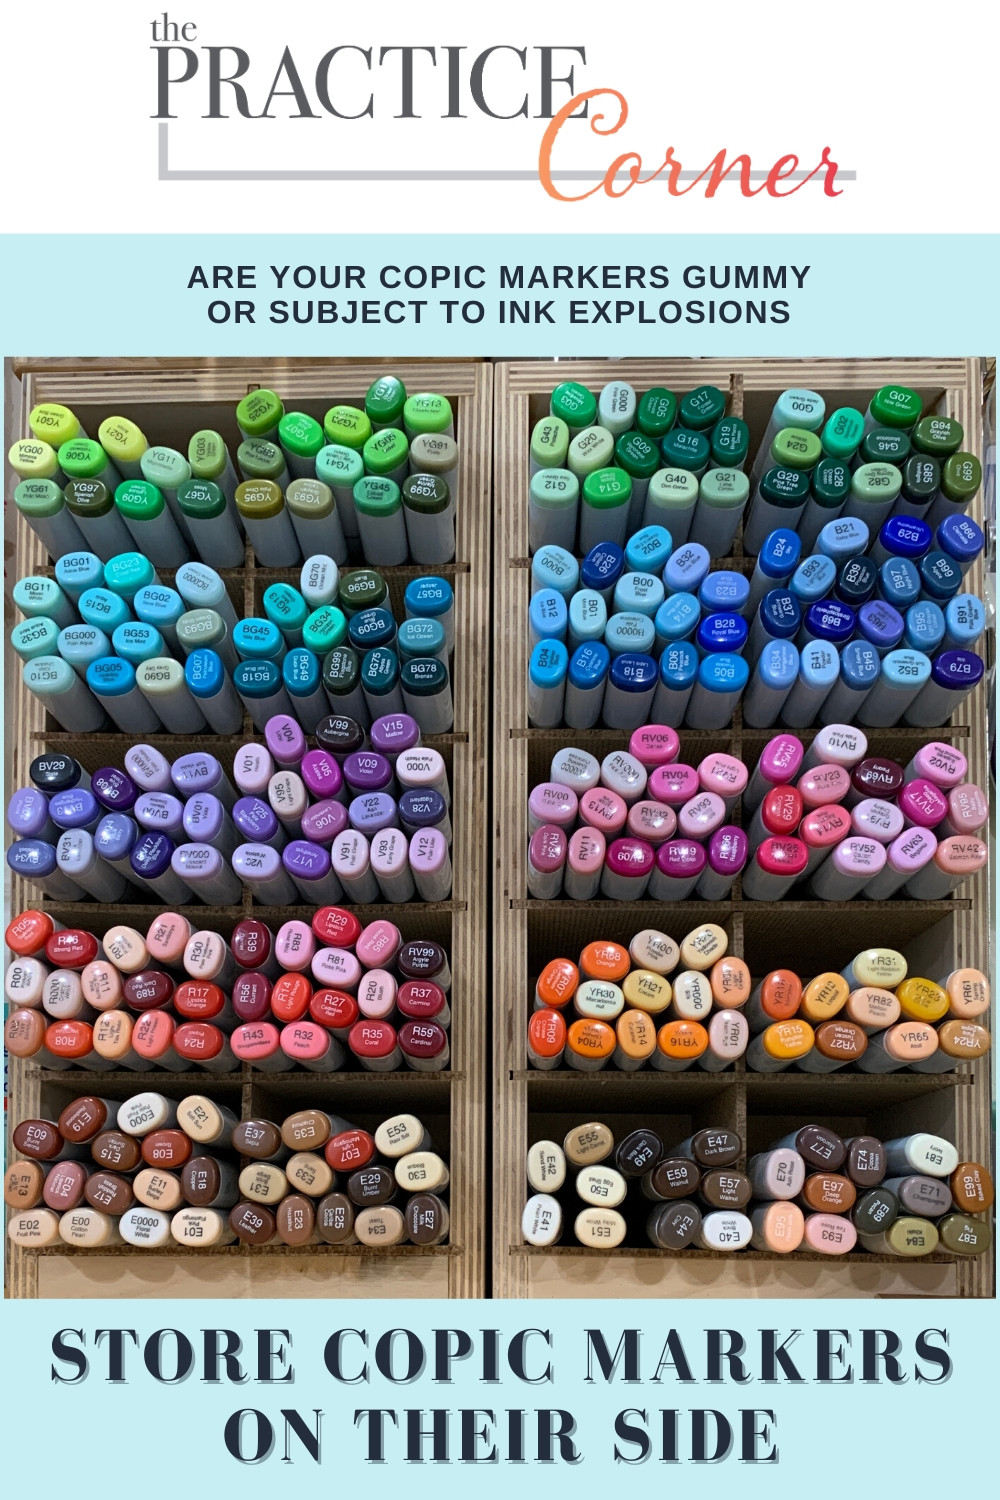 Copic marker maintenance will extend the life of your markers | Clean your Copic markers | #copicmarkermaintenance #thepracticecorner #coloringtips #copicmarker